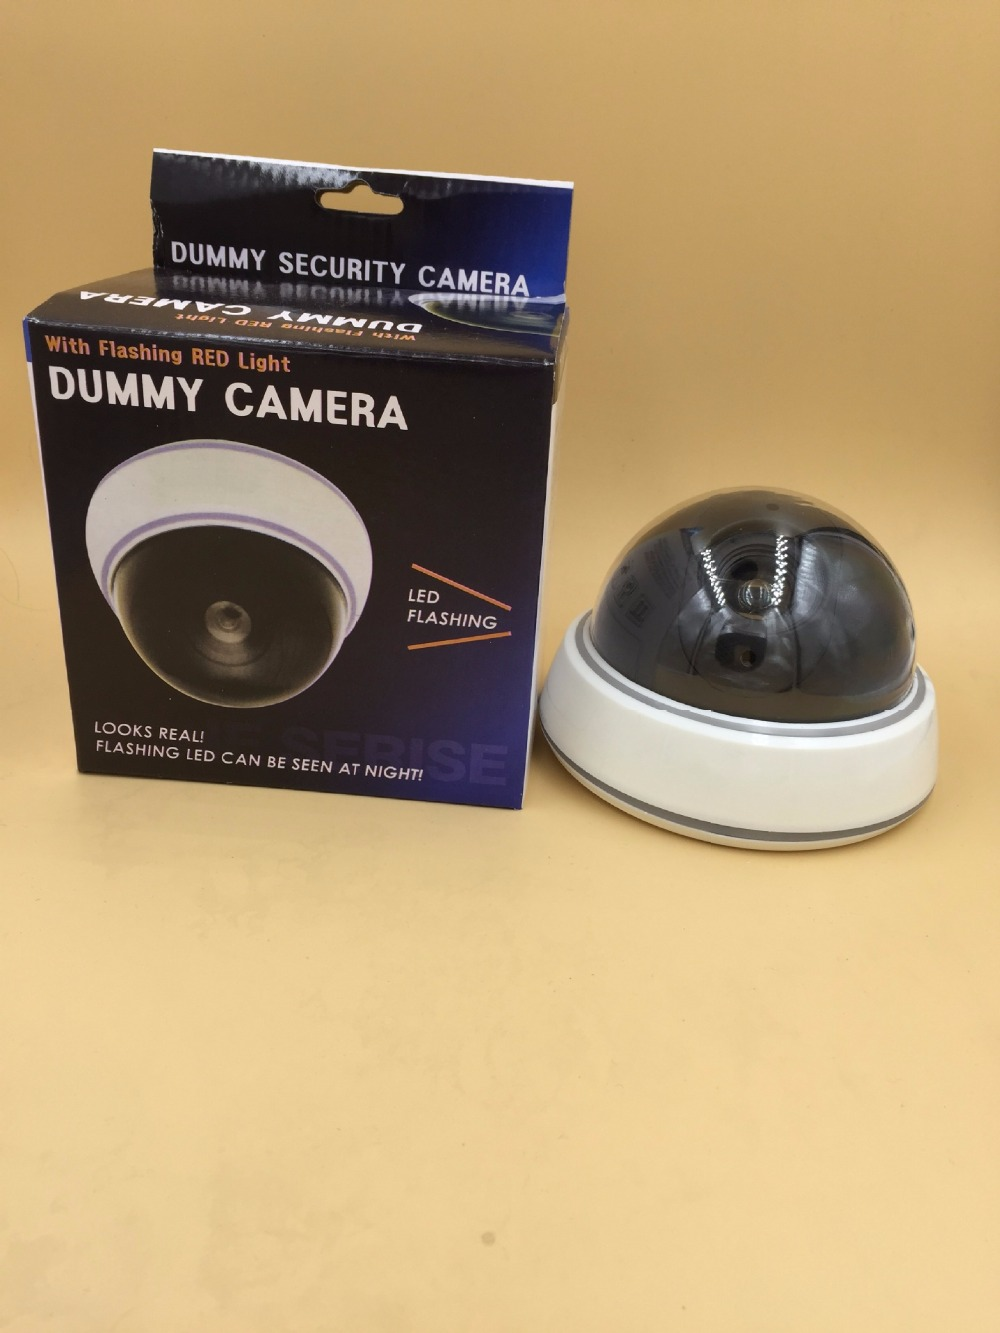 Fake Dummy Camera Security Camera with LED Flashing Lights for Property Security Use